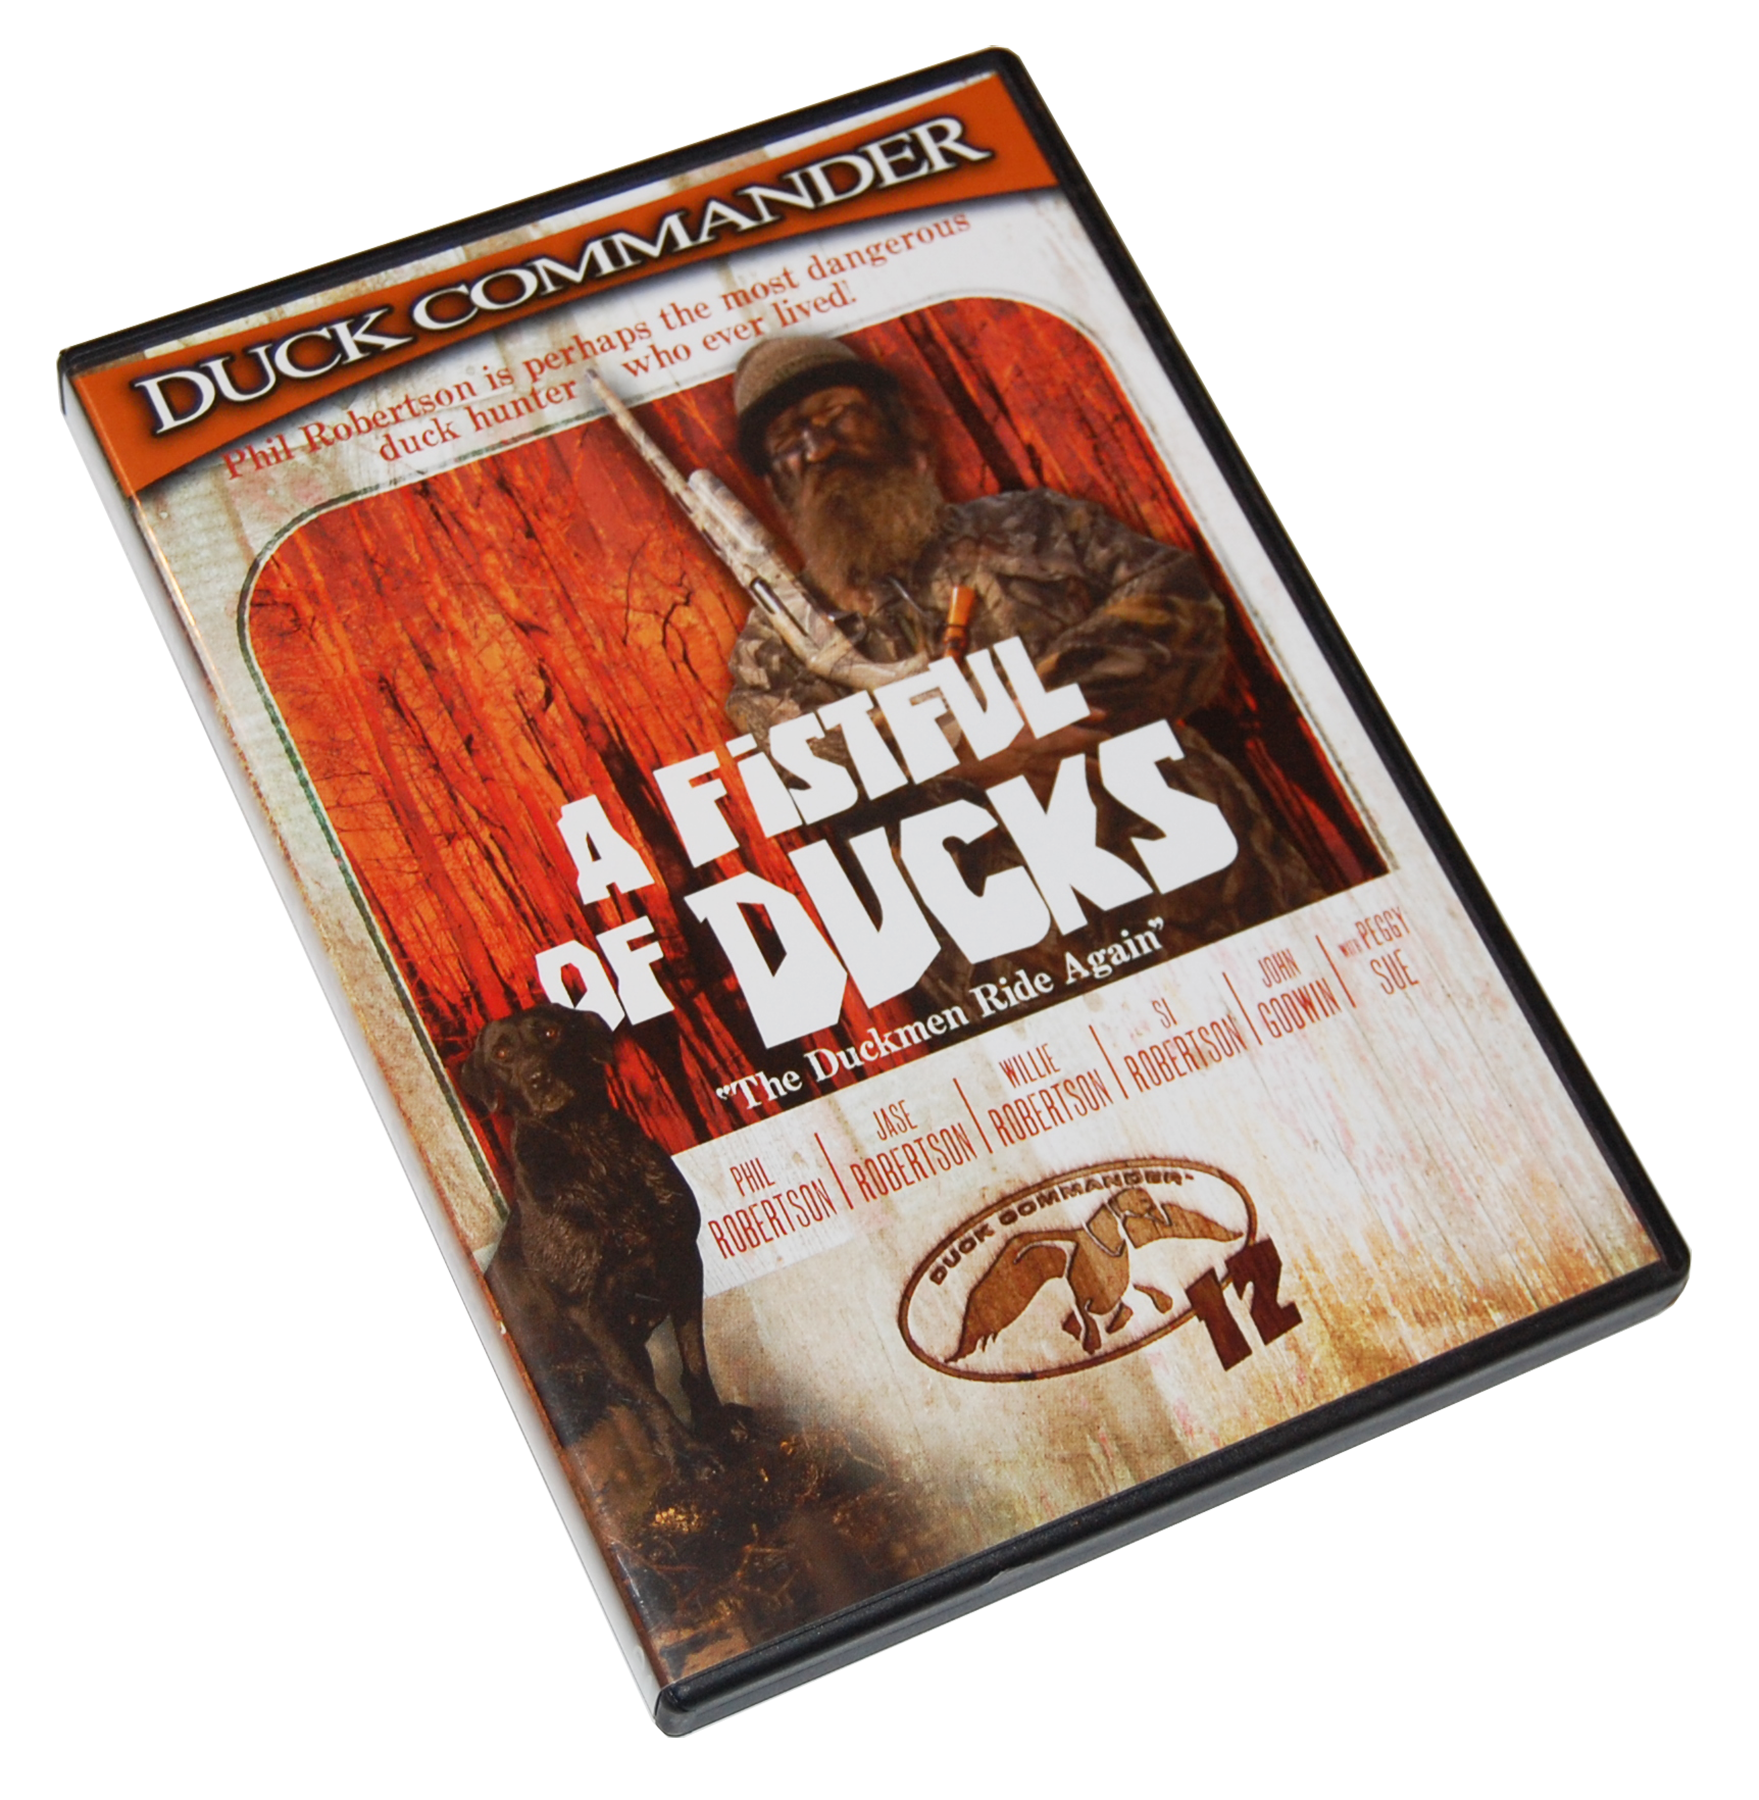 Duck Commander DD12 Duckmen 12 - A Fistful of Ducks DVD 61 Minutes 2008